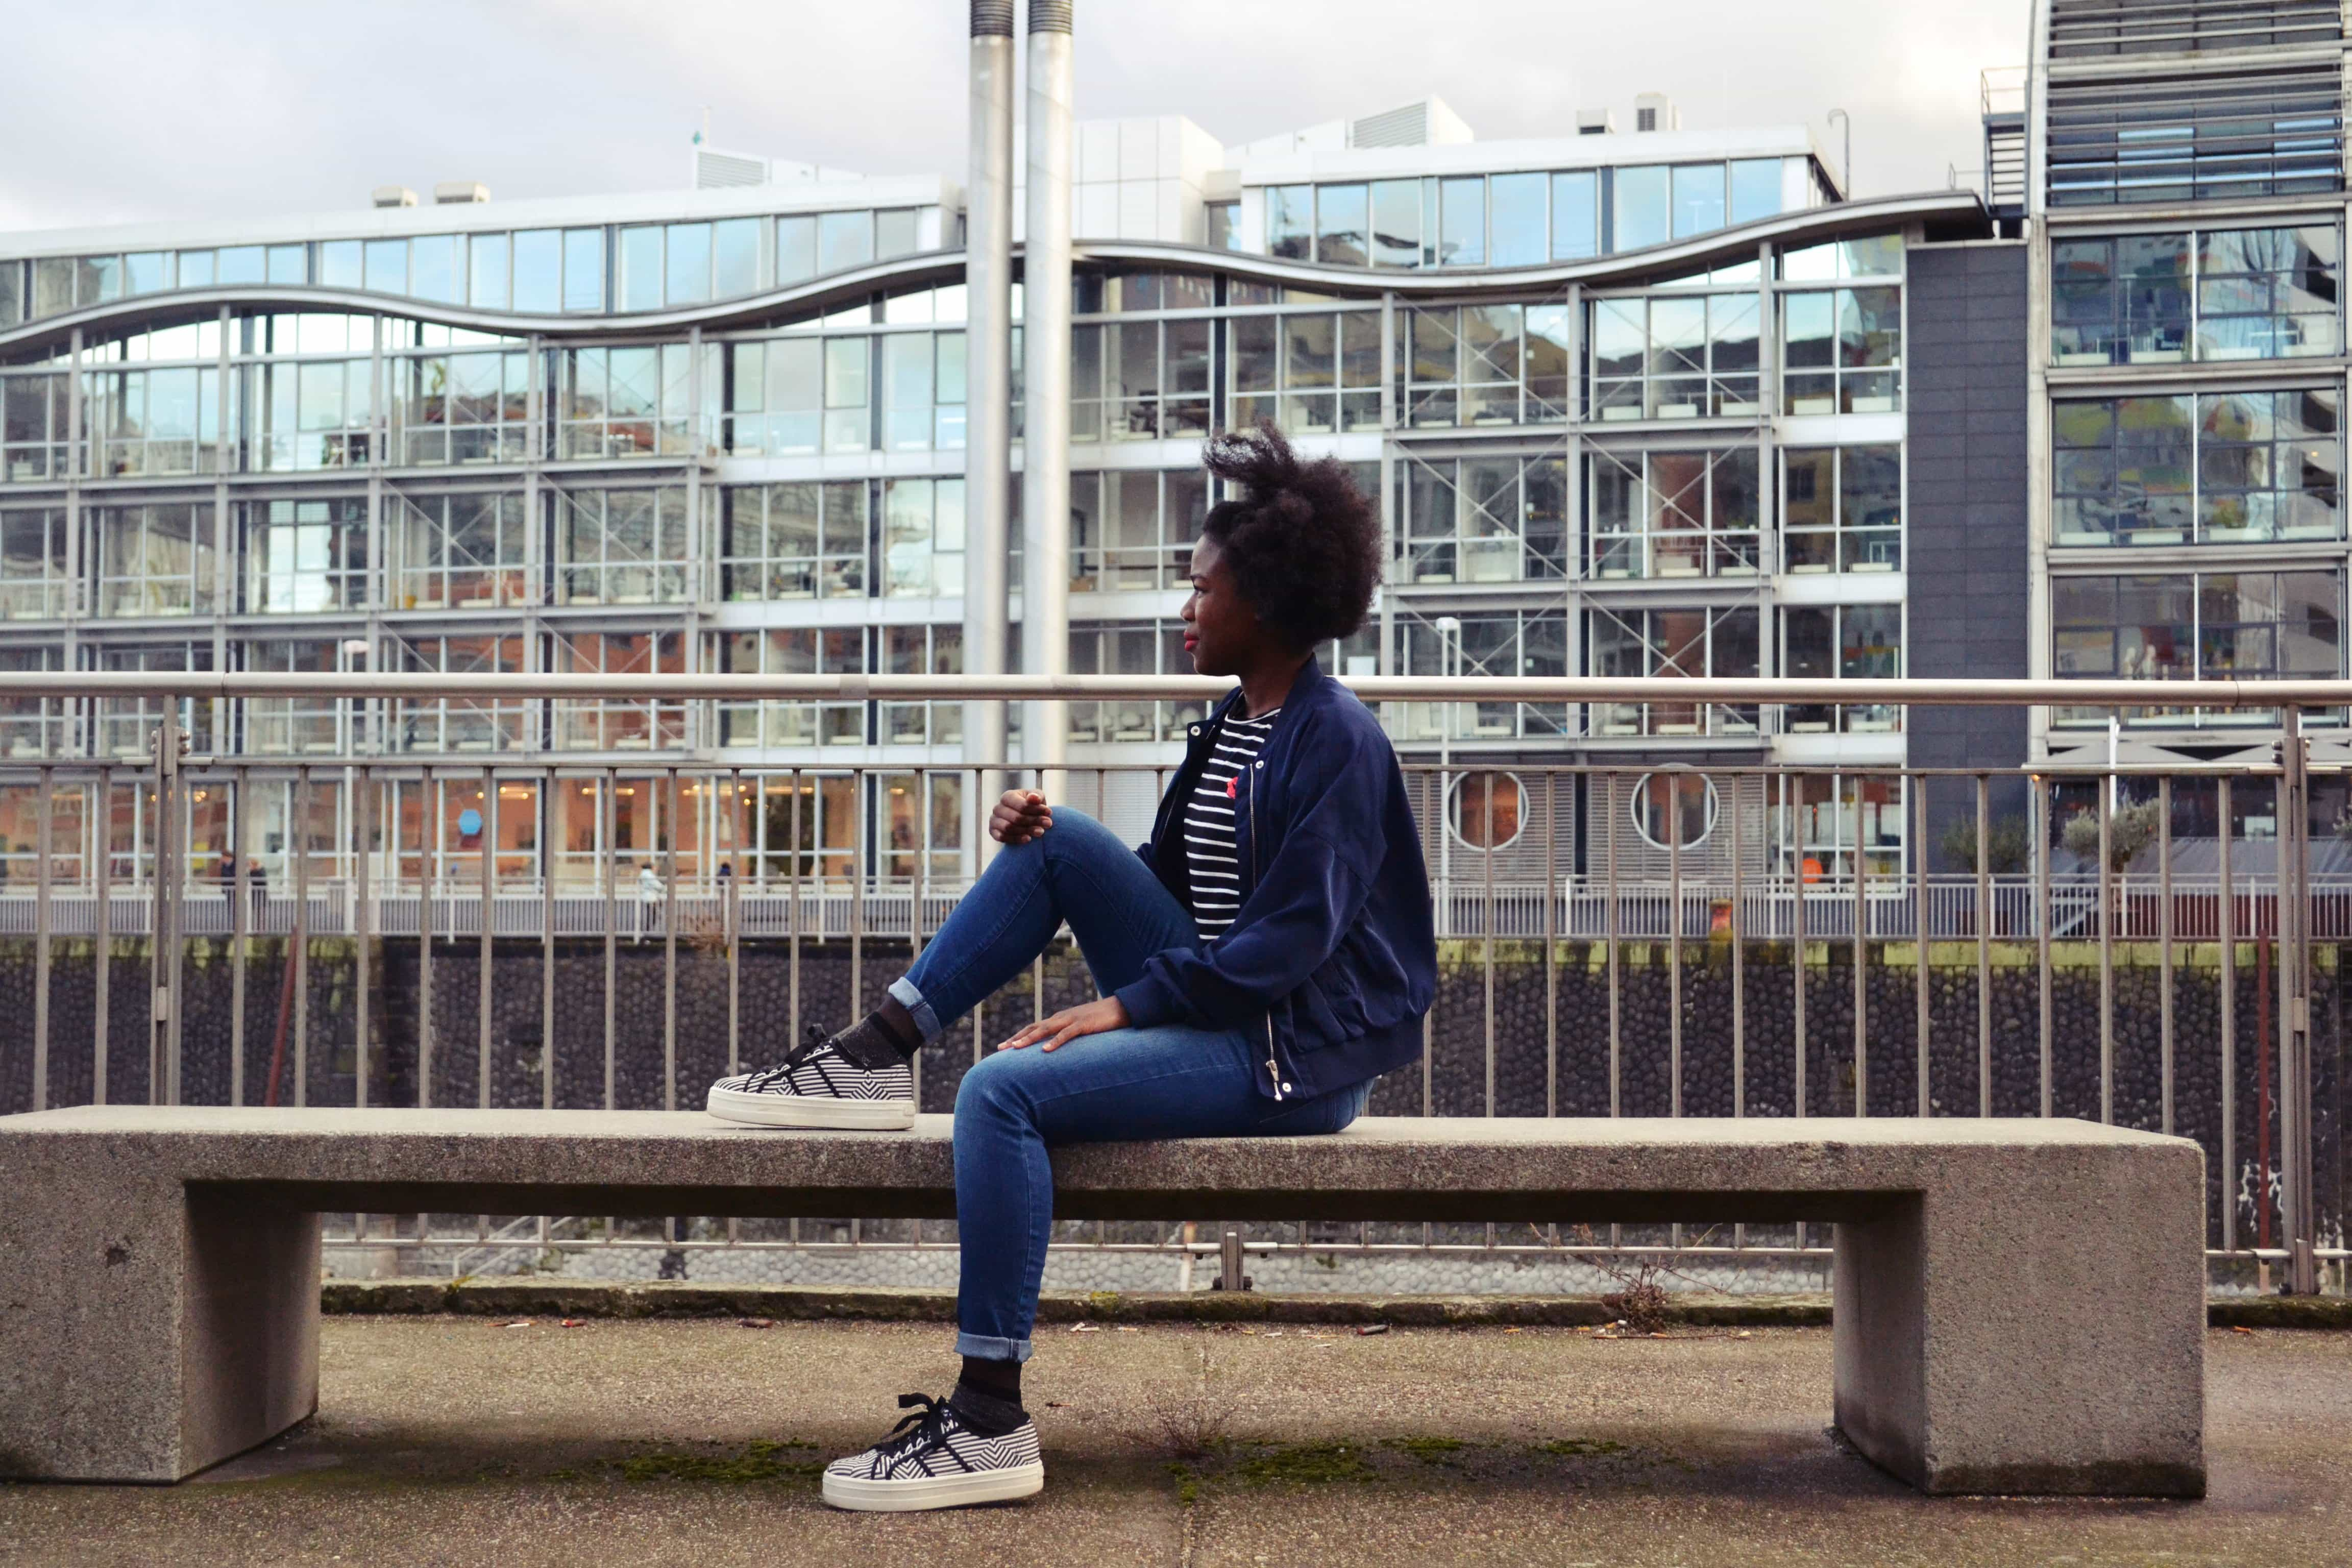 A woman with an afro wearing a navy blue bomber jacket, a black and white stripy t-shirt, blue skinny jeans and black and white stripy platform shoes sits sideways on a stone bench, looking away from the camera, with one foot placed on the bench.